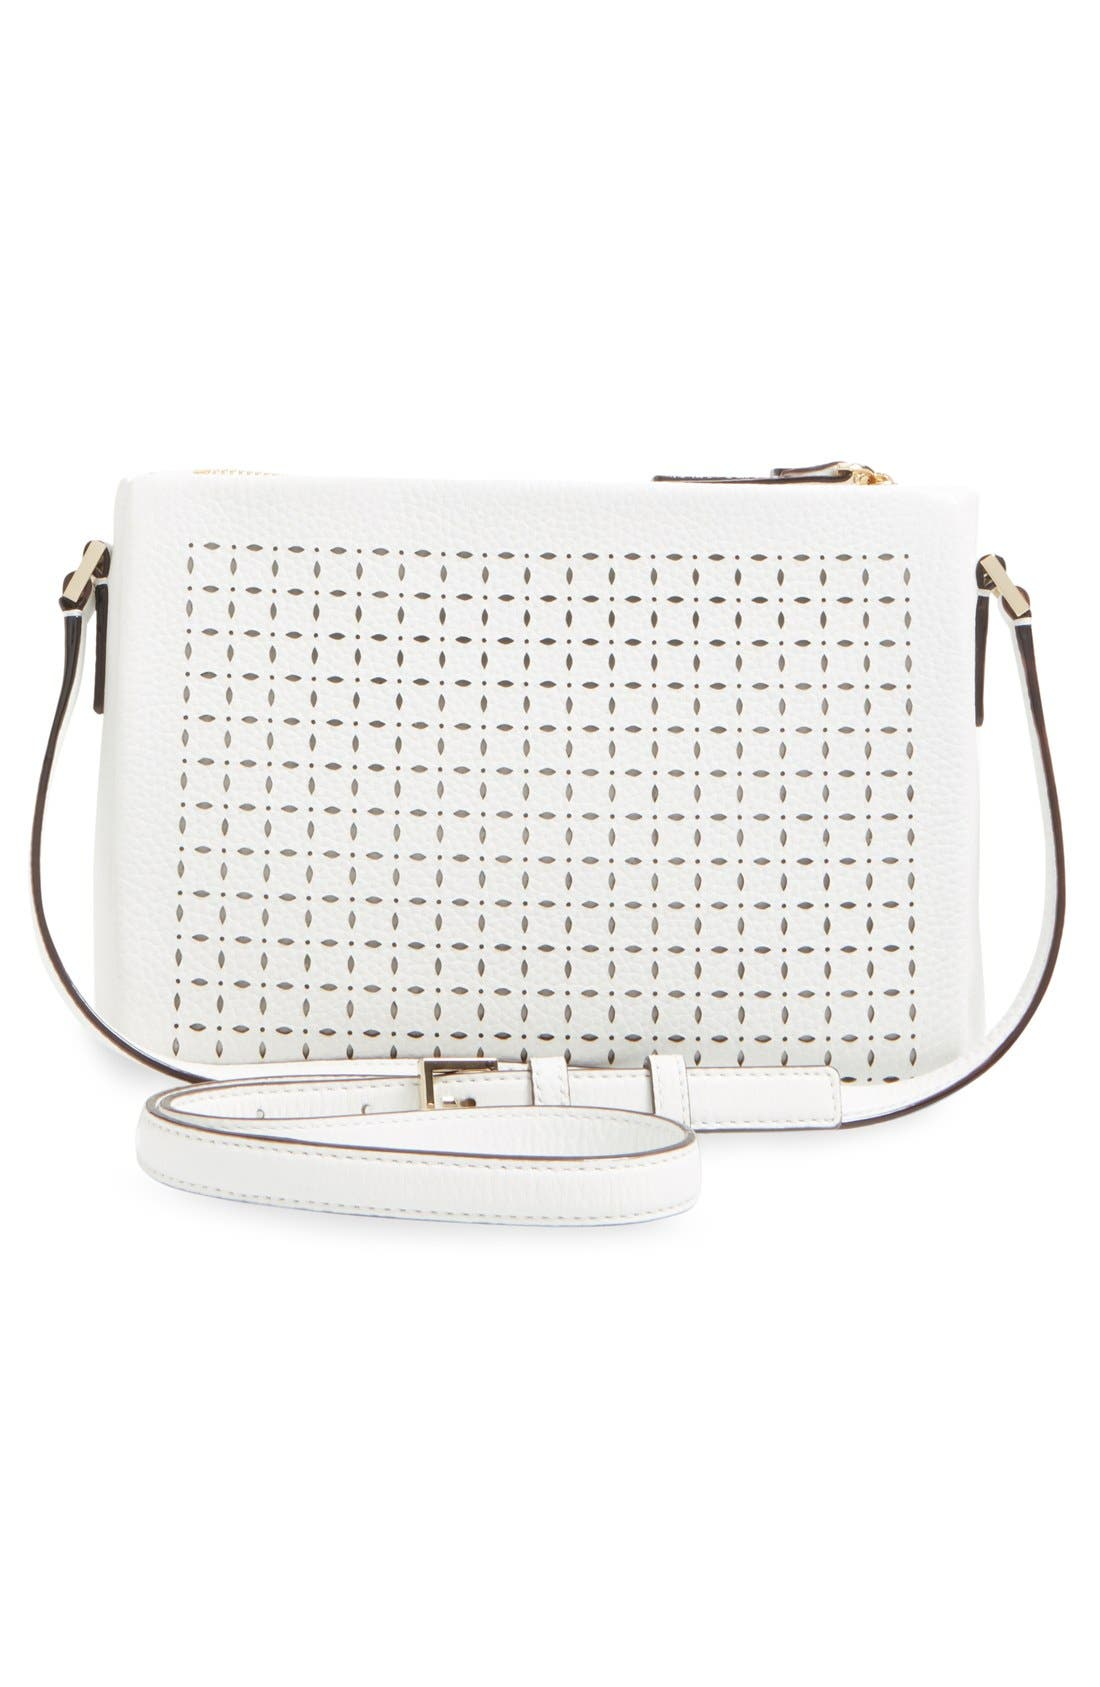 'milton lane - lilibeth' perforated leather crossbody bag,                             Alternate thumbnail 2, color,                             100